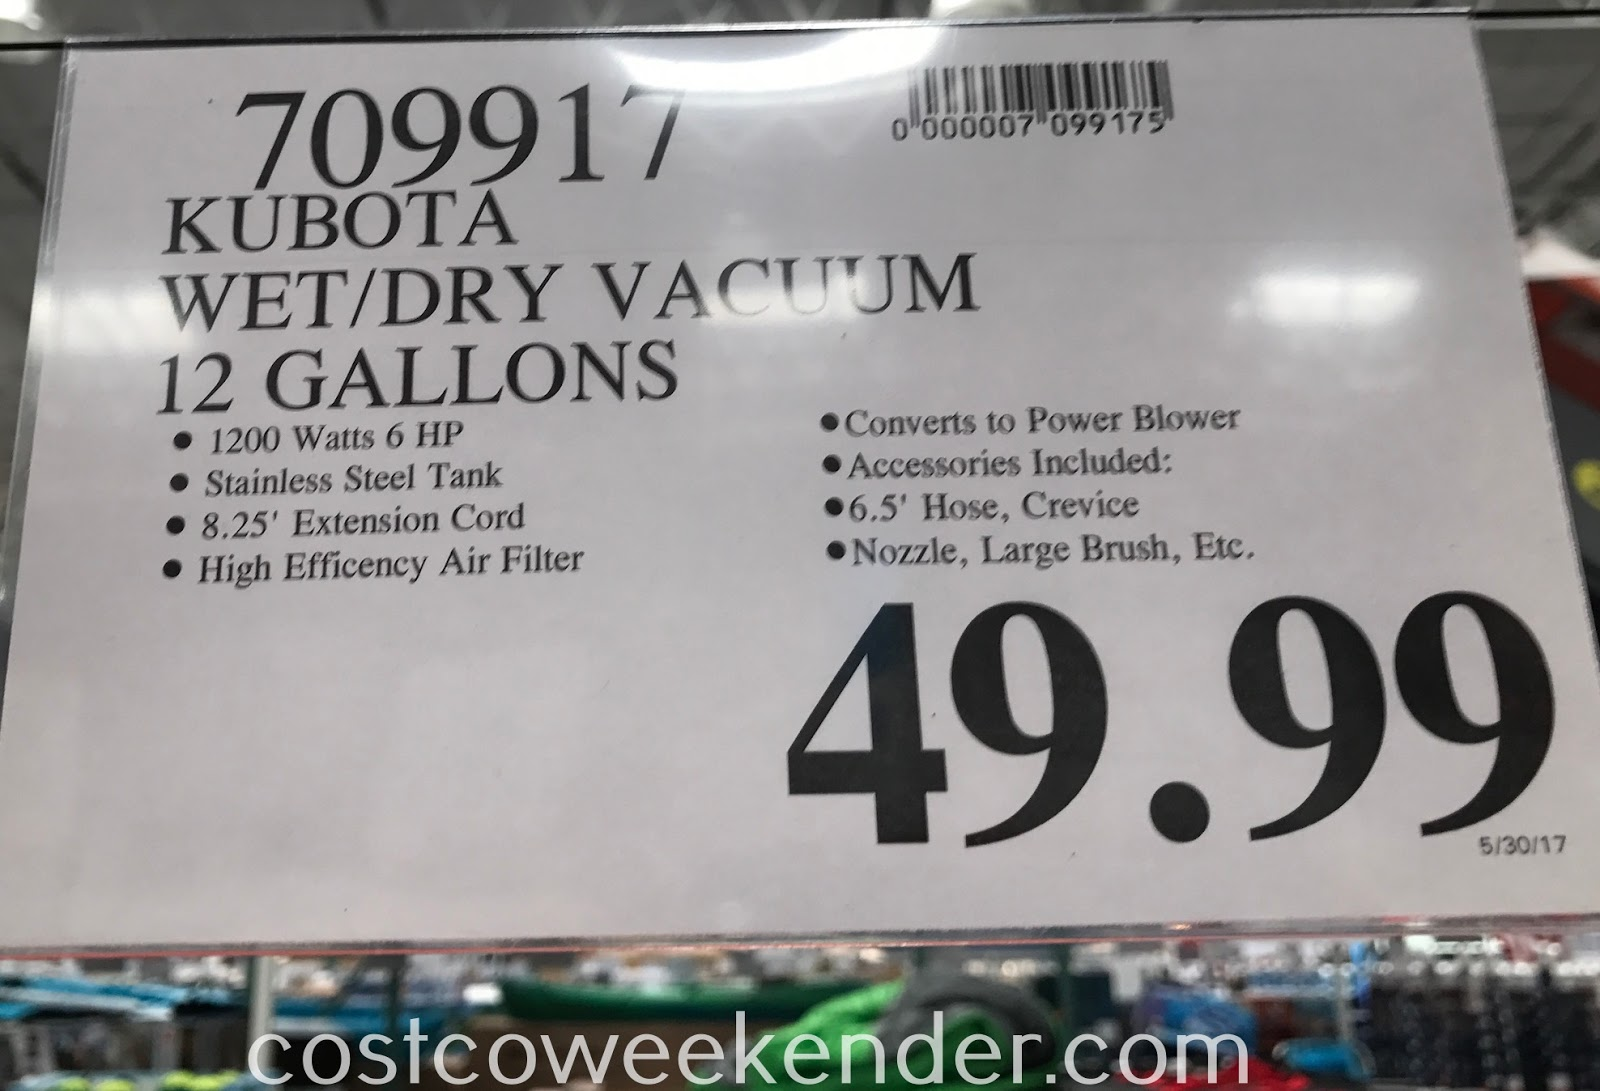 Deal for the Kubota 12 Gallon Wet/Dry Stainless Steel Vacuum at Costco